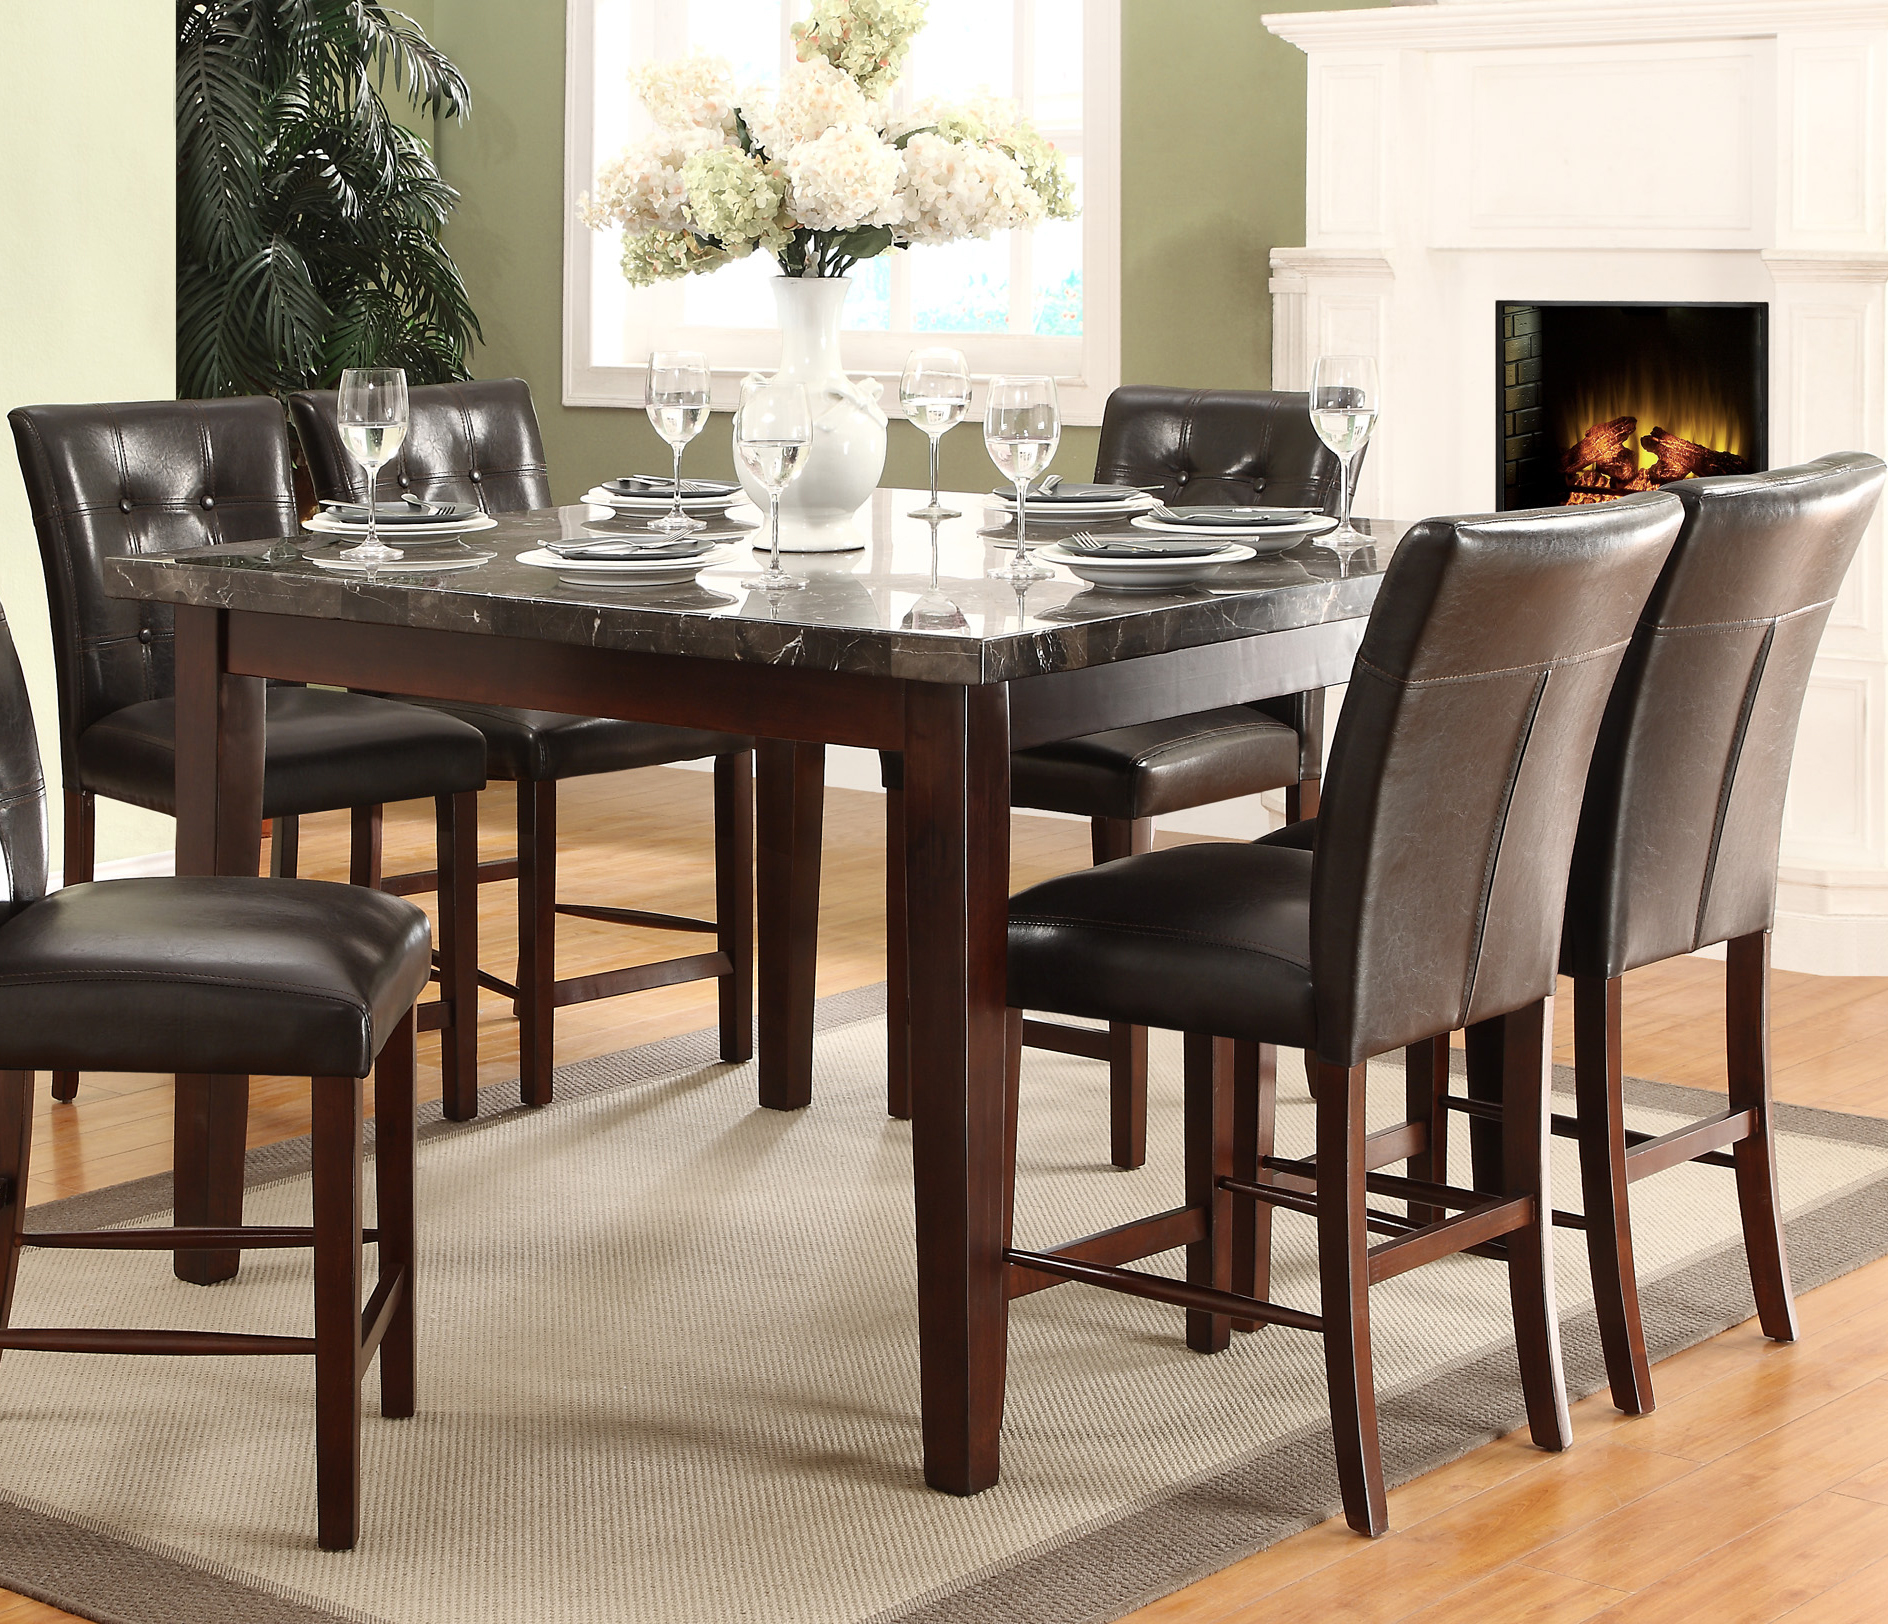 Dining Room Furniture Dallas Tx: Homelegance Decatur Counter Height Table Dallas TX